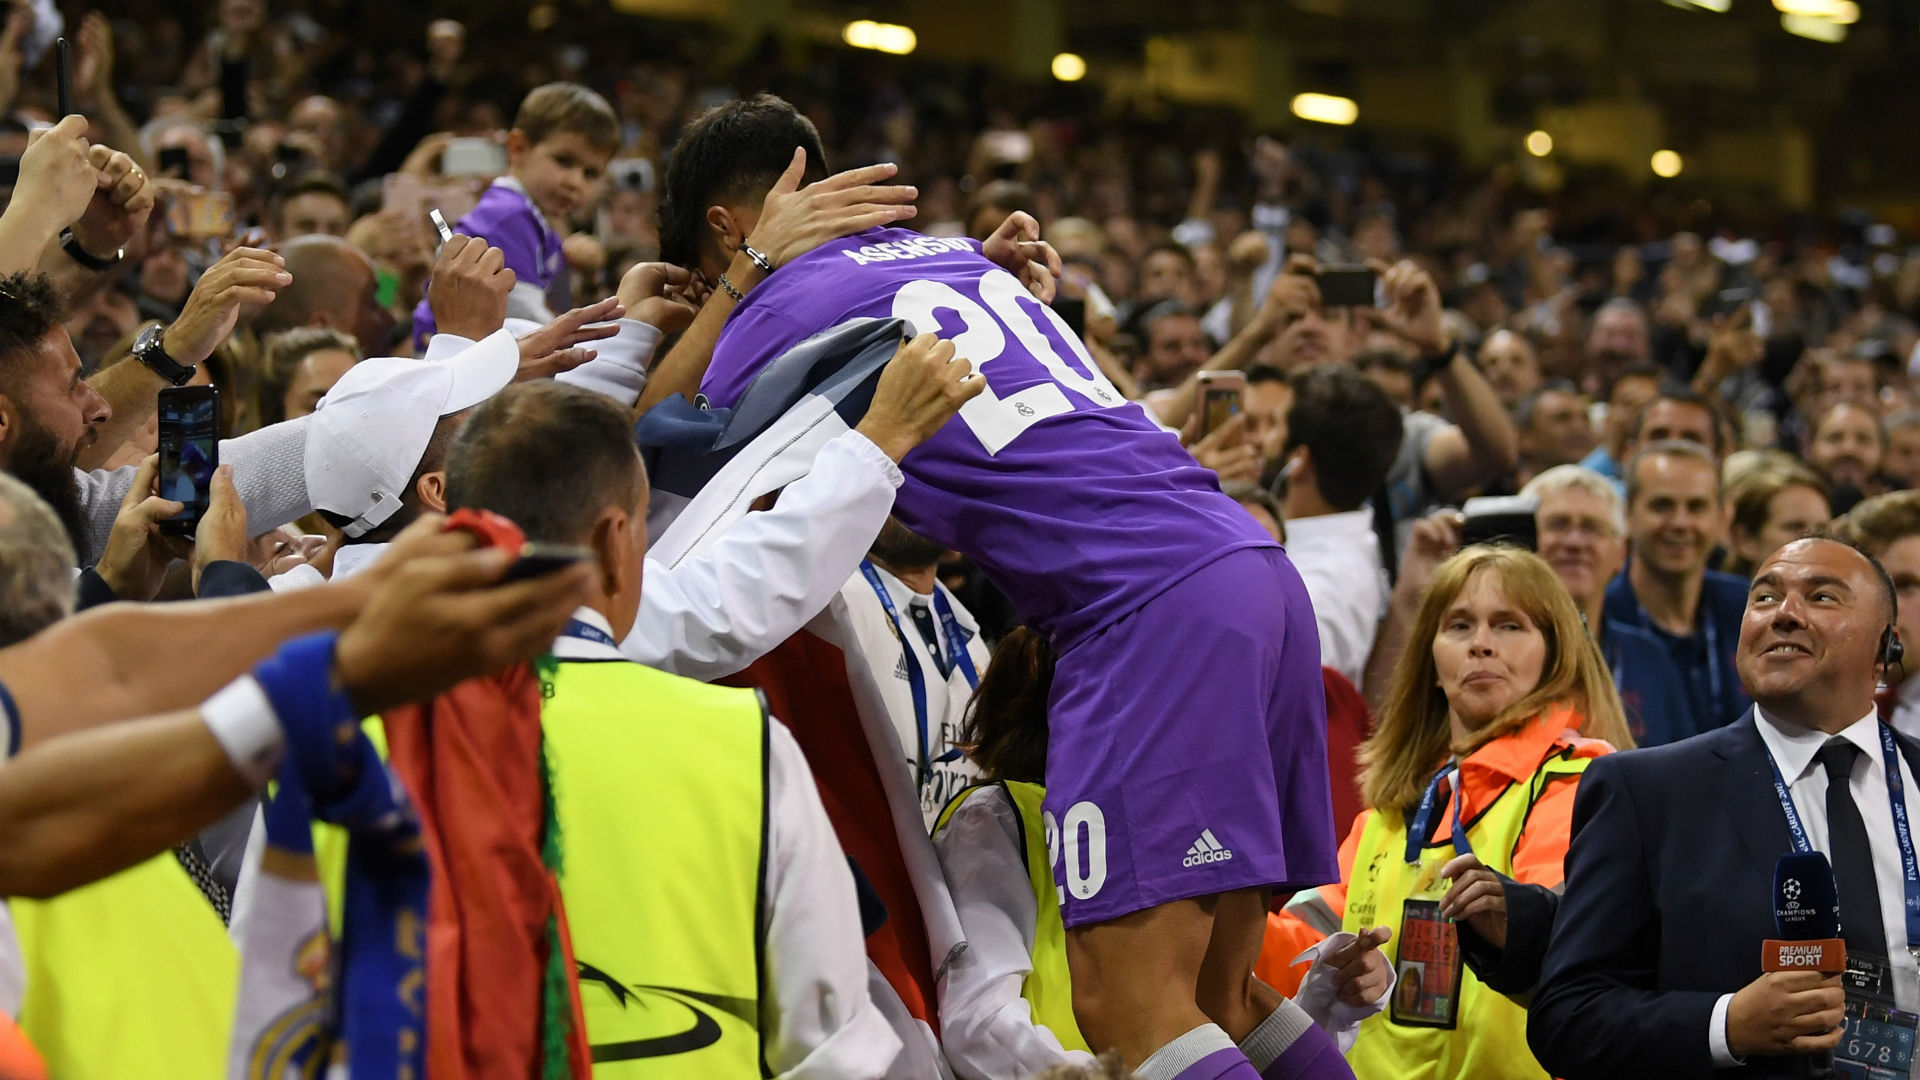 Real Madrid fans want Cristiano Ronaldo to get Ballon d'Or honour